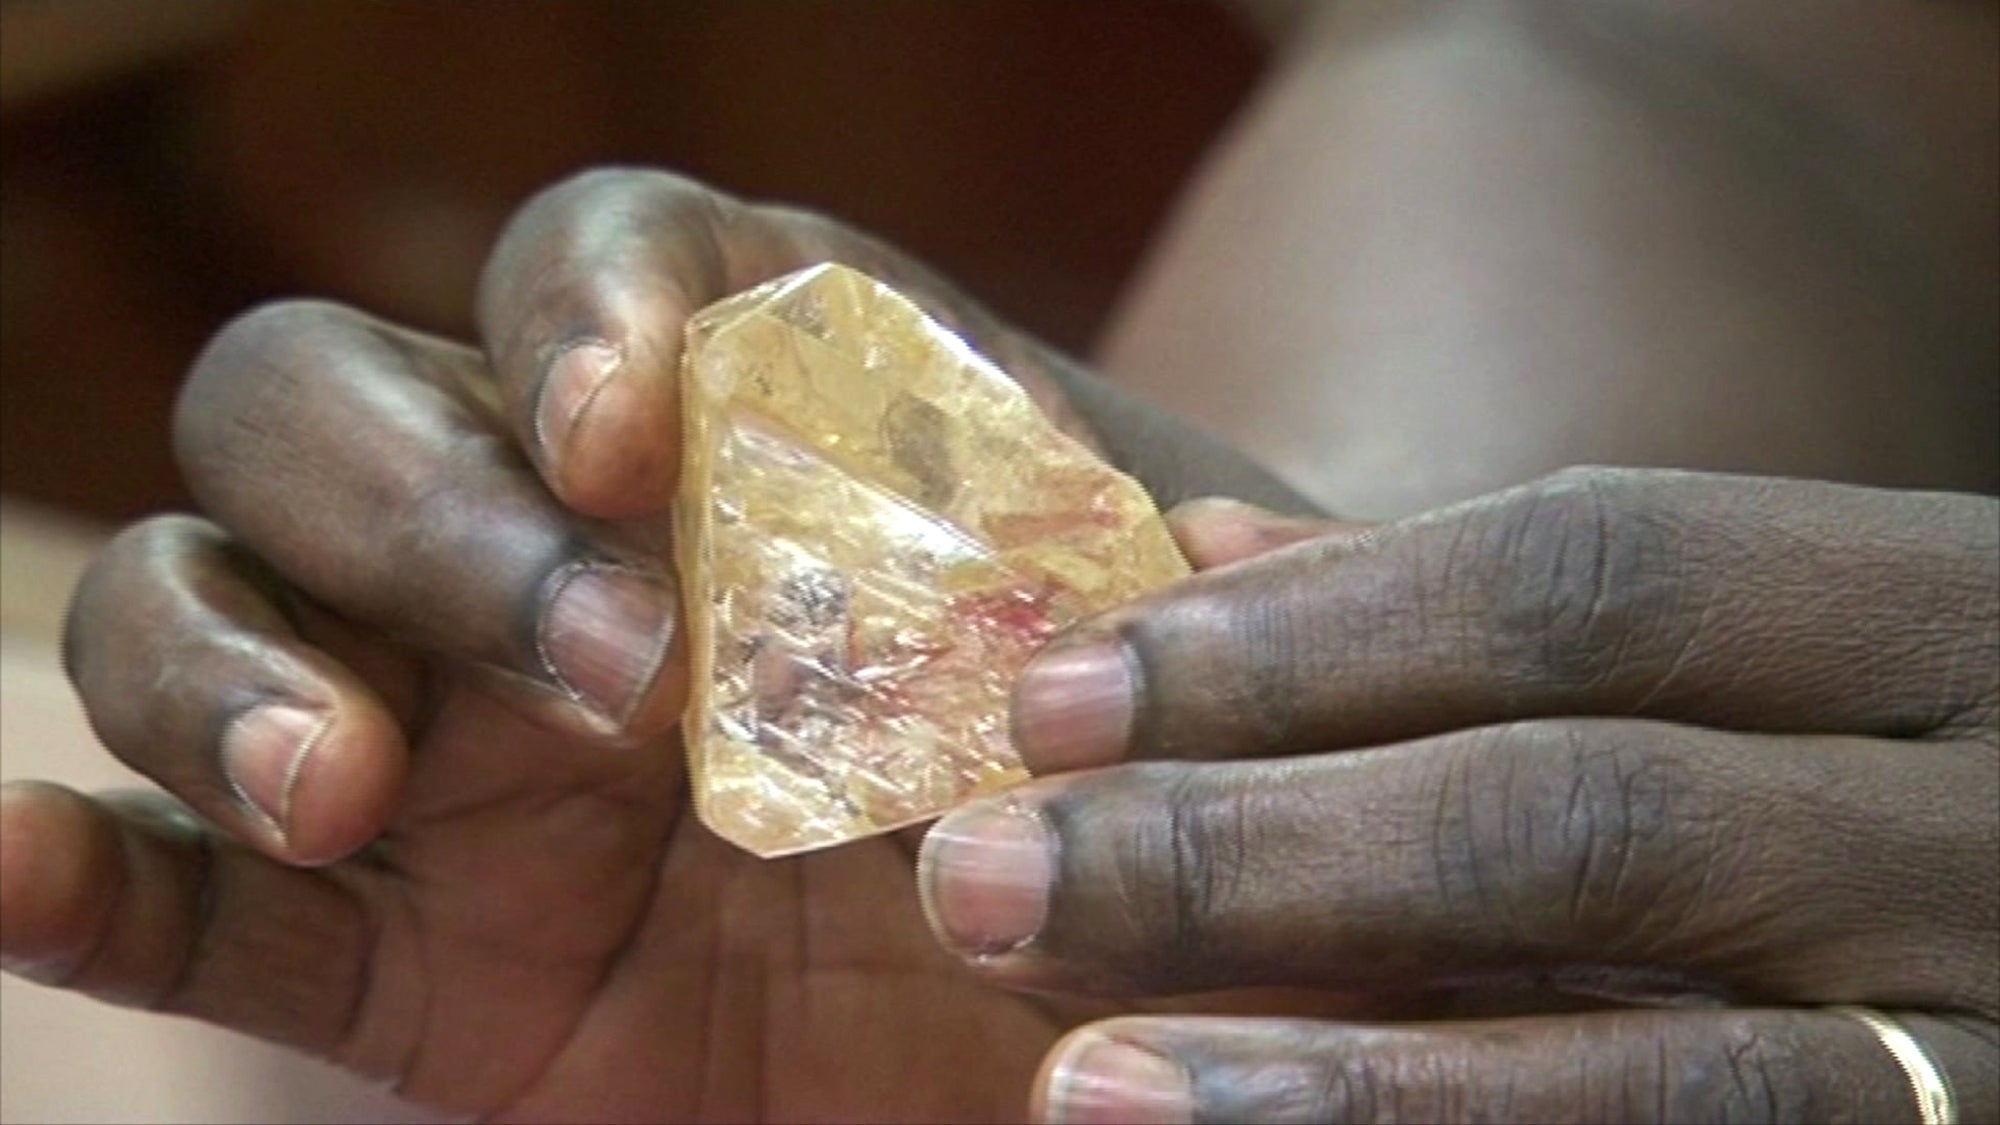 Miner Finds Enormous 706-Carat Diamond, Promptly Hands It Over To The Government